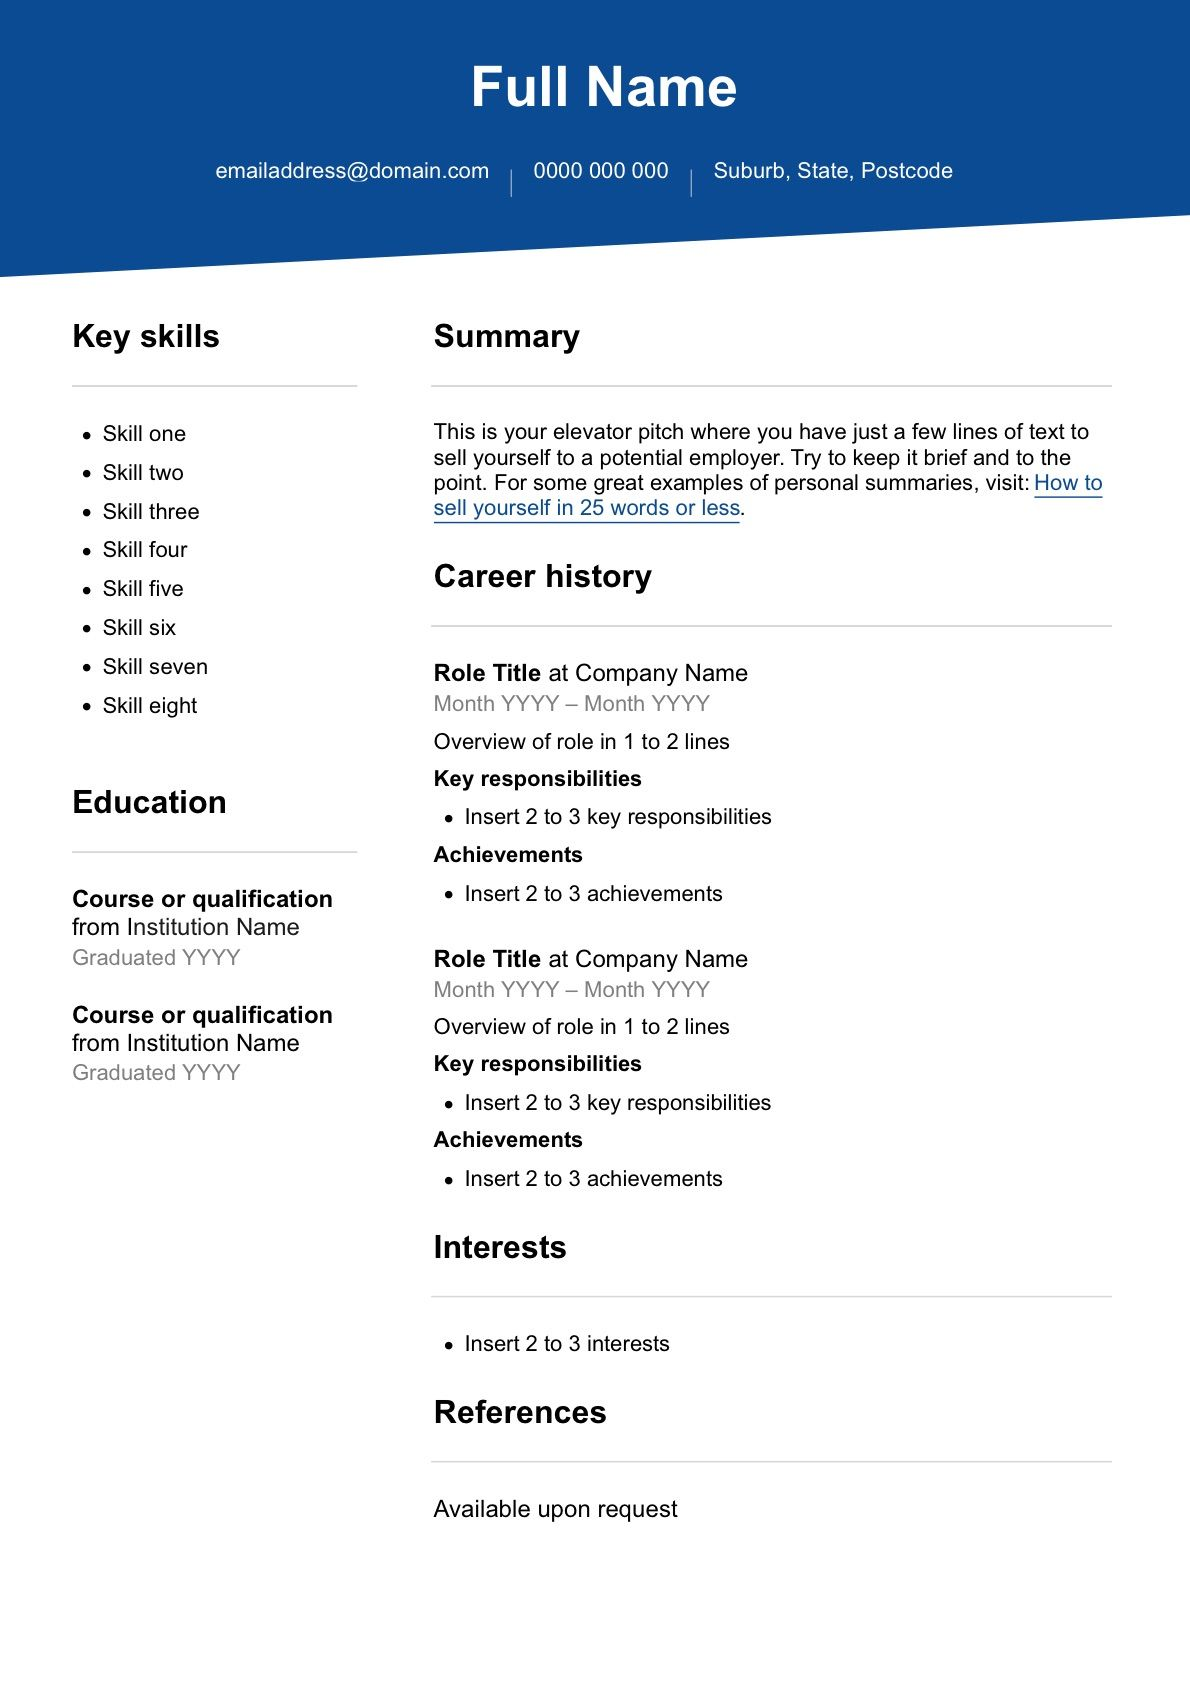 Cv Template Australia Andriblog.design in 2020 Resume